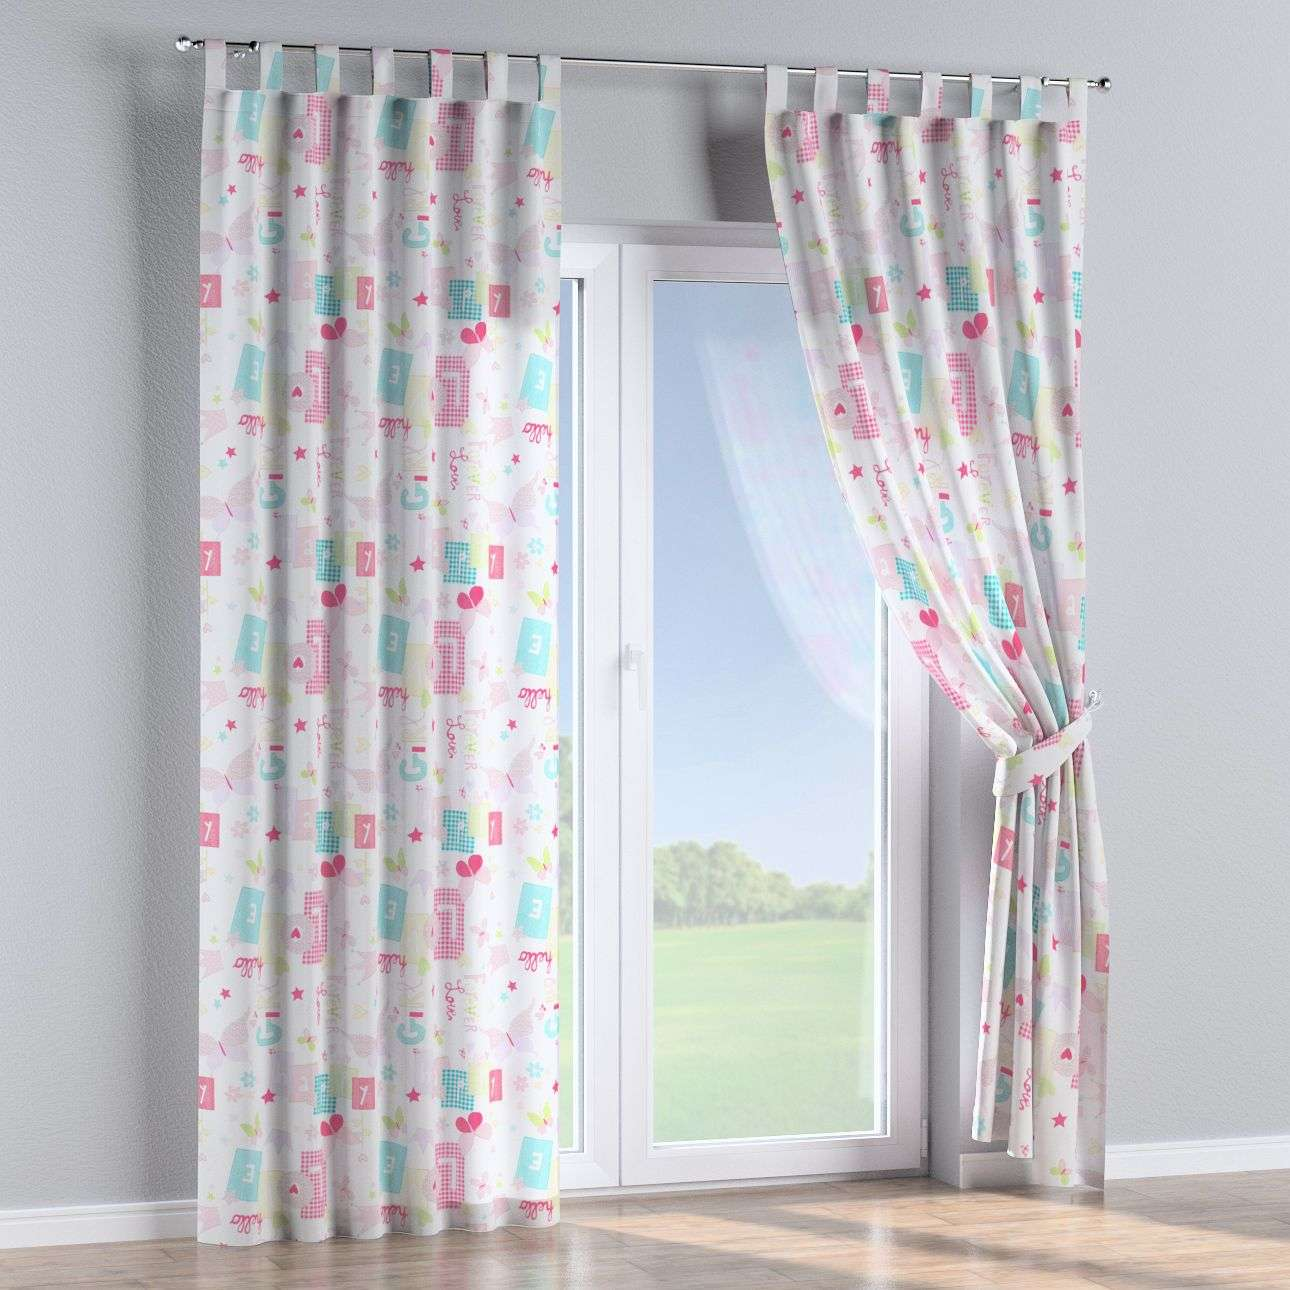 Tab top curtains 130 x 260 cm (51 x 102 inch) in collection Little World, fabric: 141-51